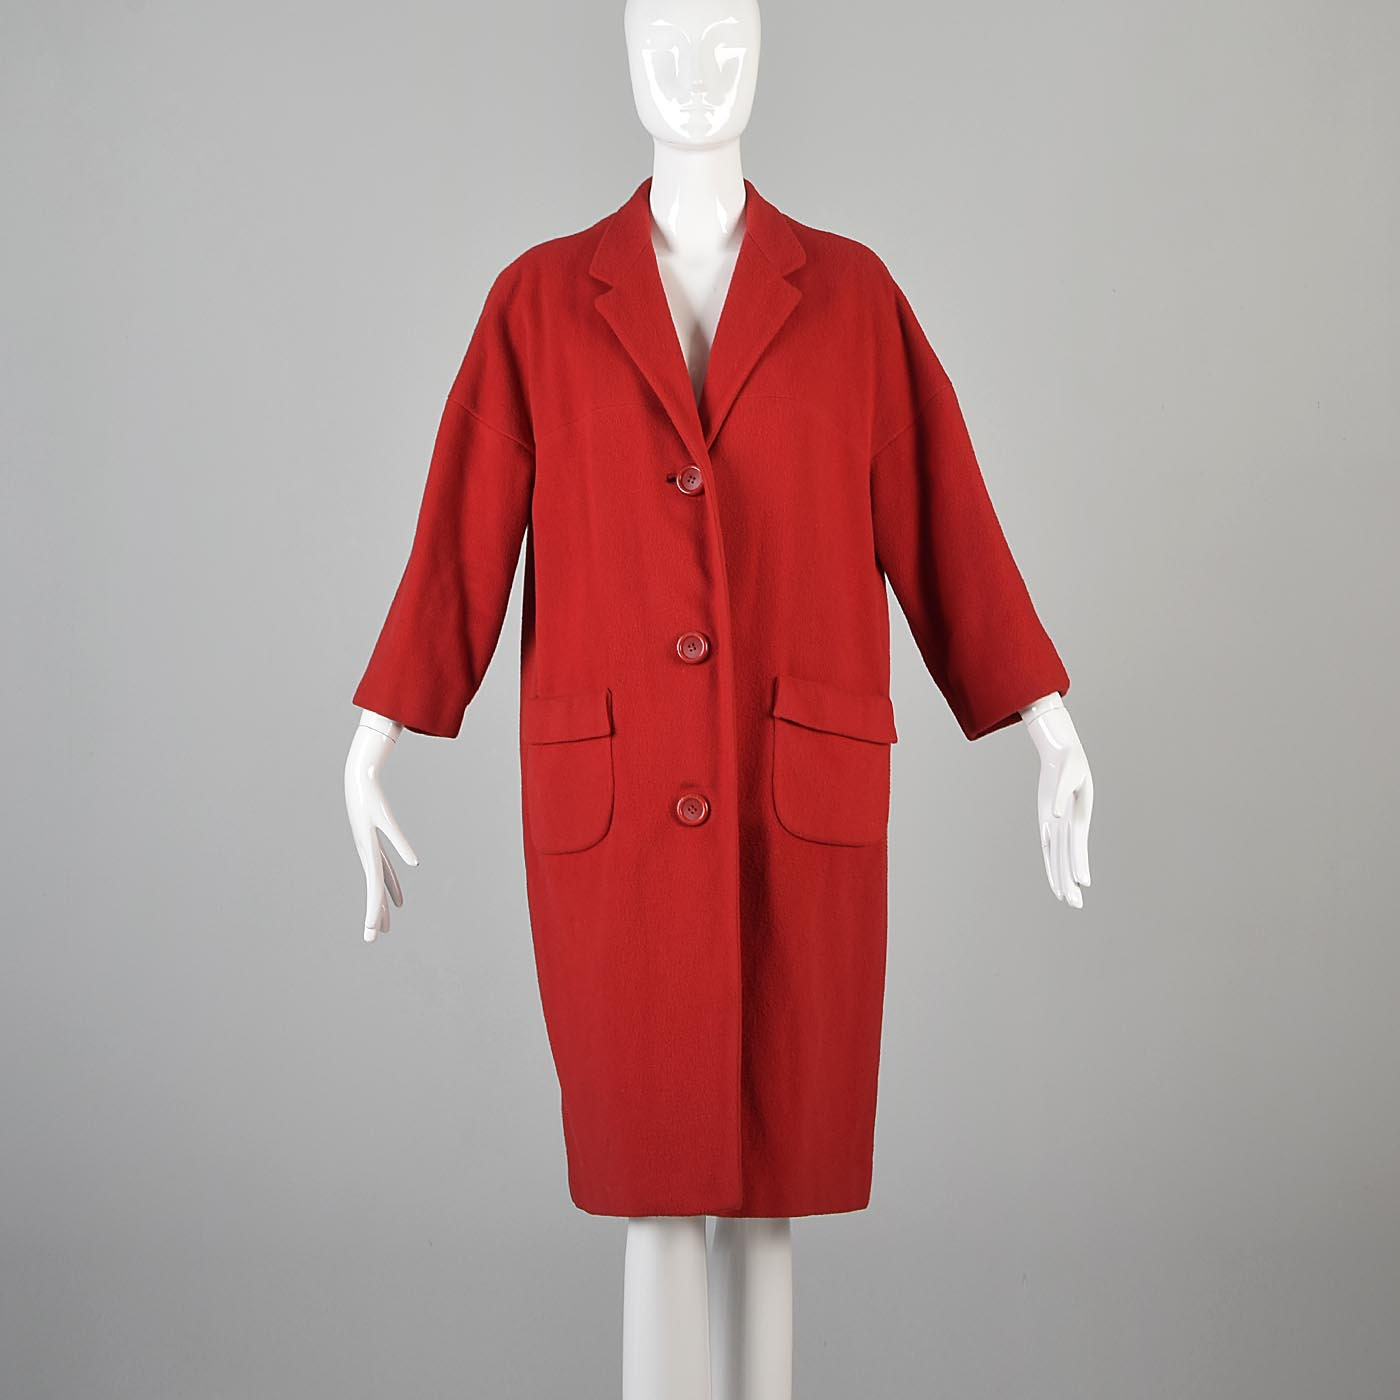 1960s Marshall Fields Lipstick Red Cashmere Coat